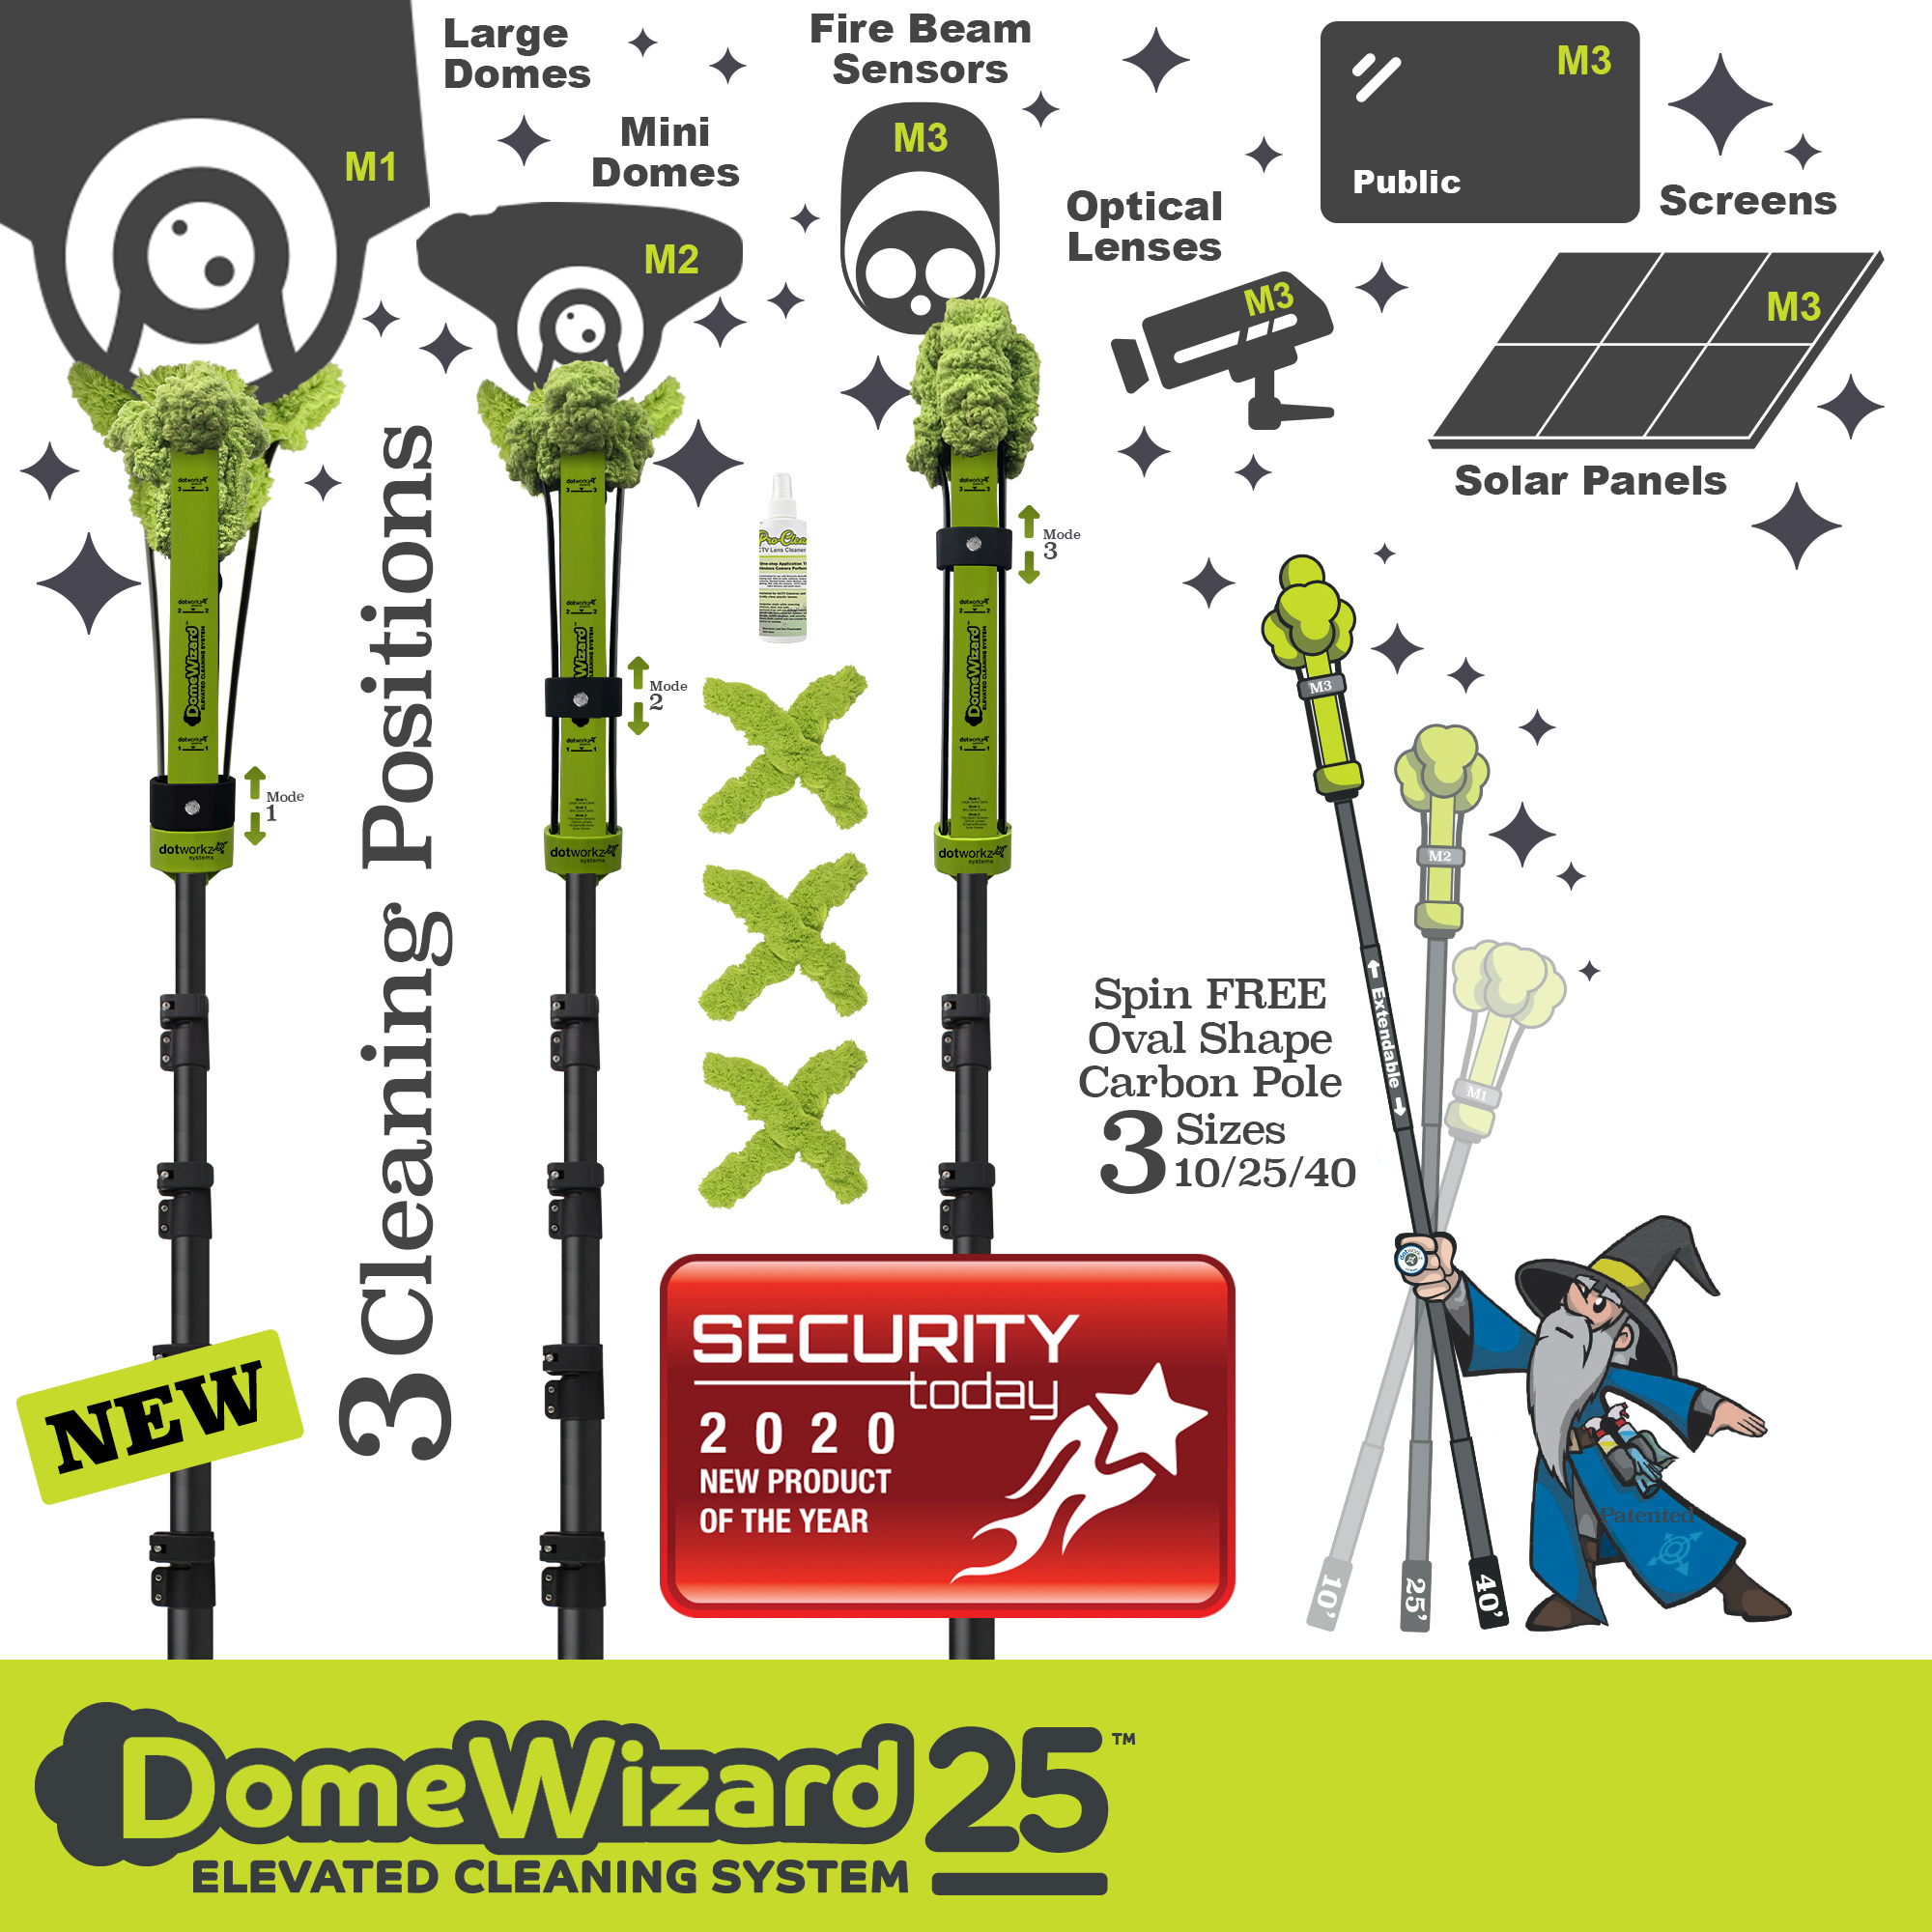 DomeWizard 25 – Elevated Cleaning System (DW-25) with 3 Cleaning Modes